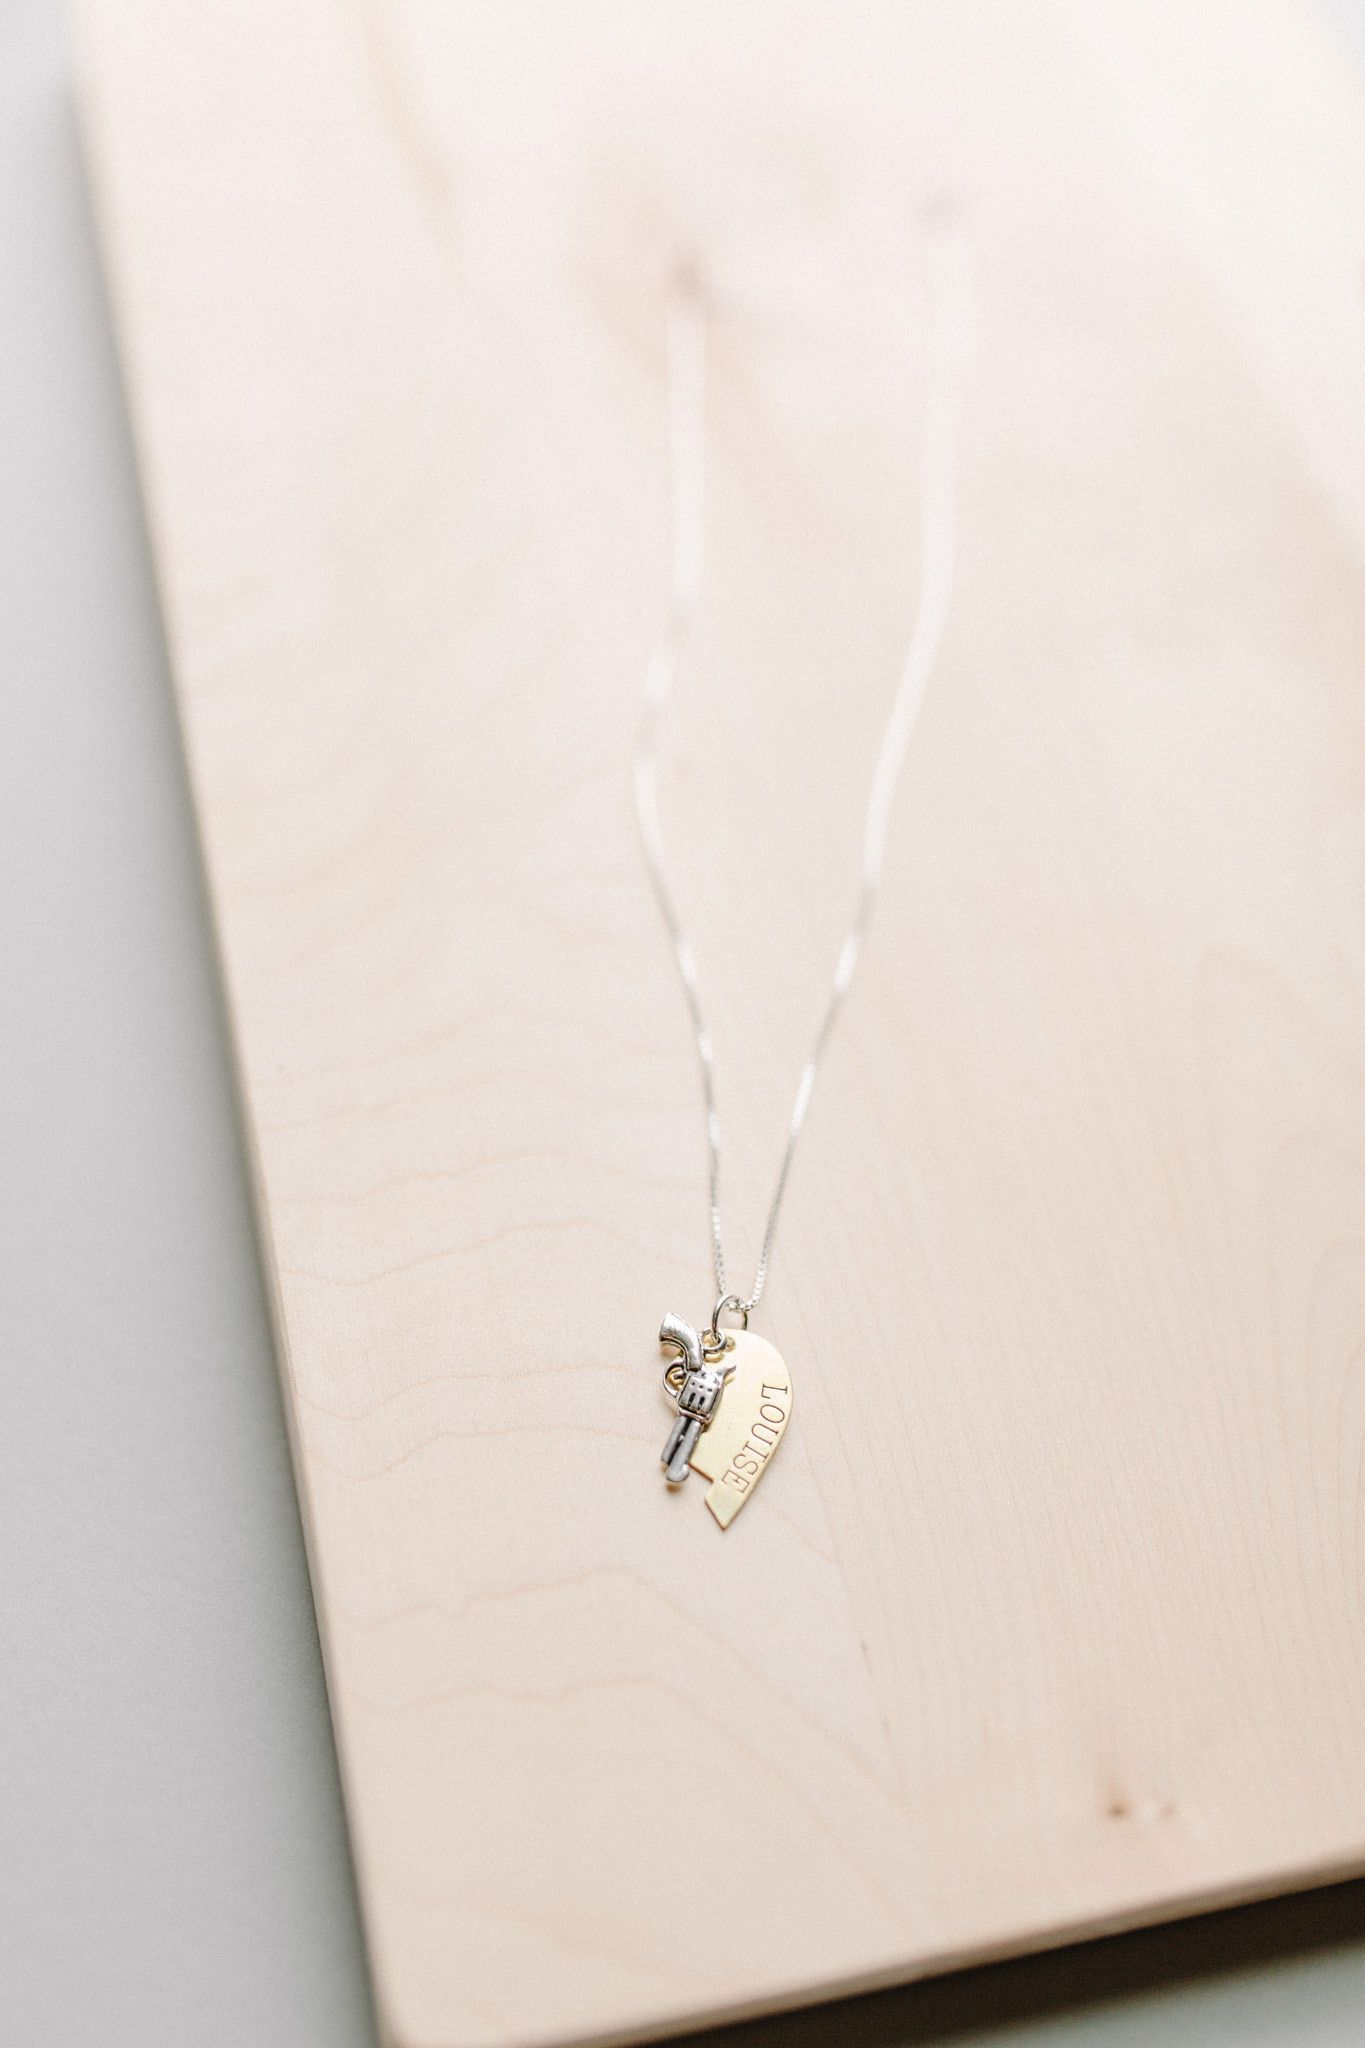 Do you have a special person that brings out the Rebel in You? This Thelma & Louise paired necklace is the perfect celebration of your unique friendship. Hand stamped, this shiny brass and silver combo make this the perfect match for any outfit. Each order contains two heart necklaces - one for Thelma and one for her Louise. 18 inch Sterling Silver Chain  Brass Engraved Split Heart Sterling Silver Revolver Free shipping on qualifying orders. #bourbonandboots